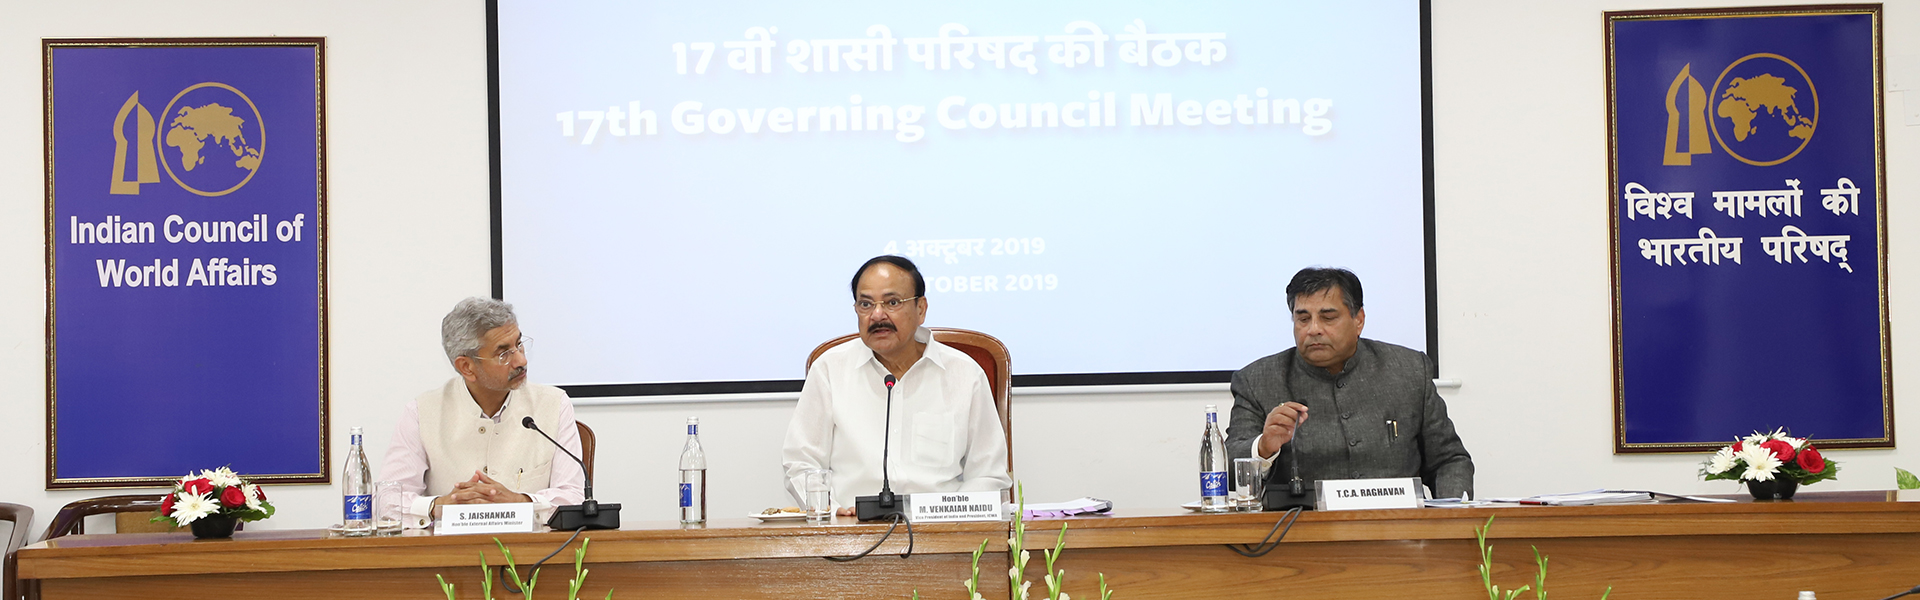 Shri  M. Venkaiah Naidu,  Hon'ble Vice President of India and President ICWA, chairing the 17th Governing Council Meeting at Sapru House, 4 October 2019.